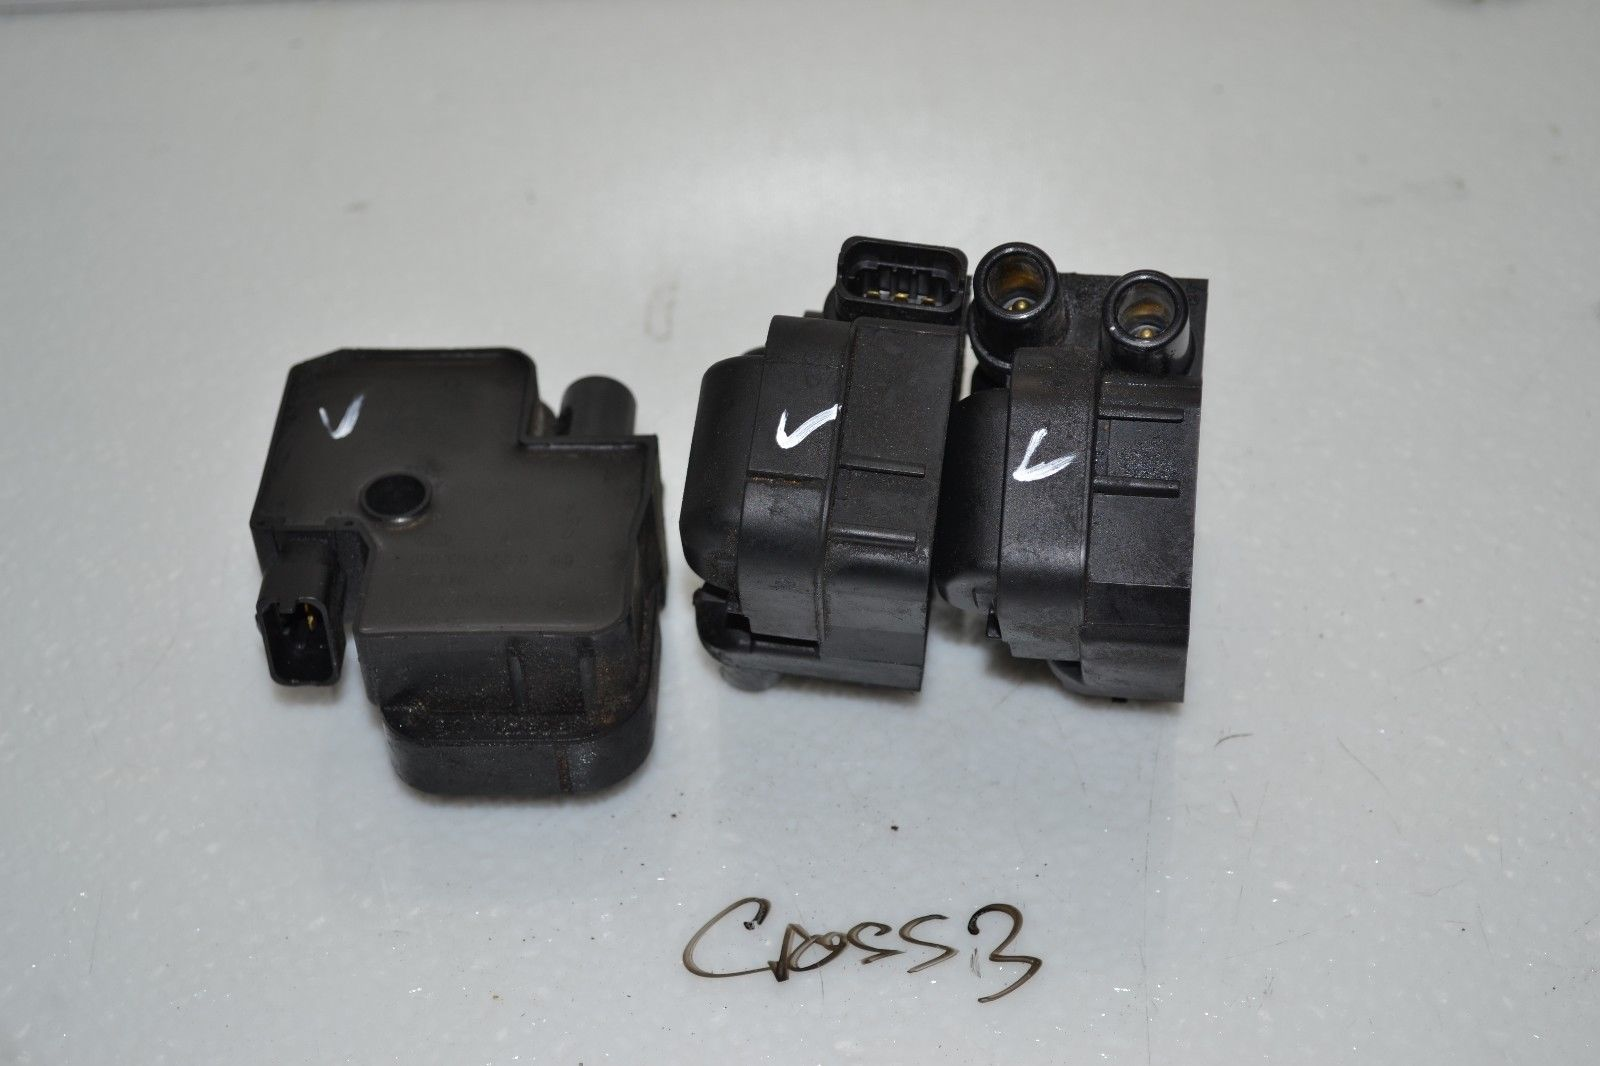 2004-2008 CHRYSLER CROSSFIRE IGNITION COIL PACKS Does not apply